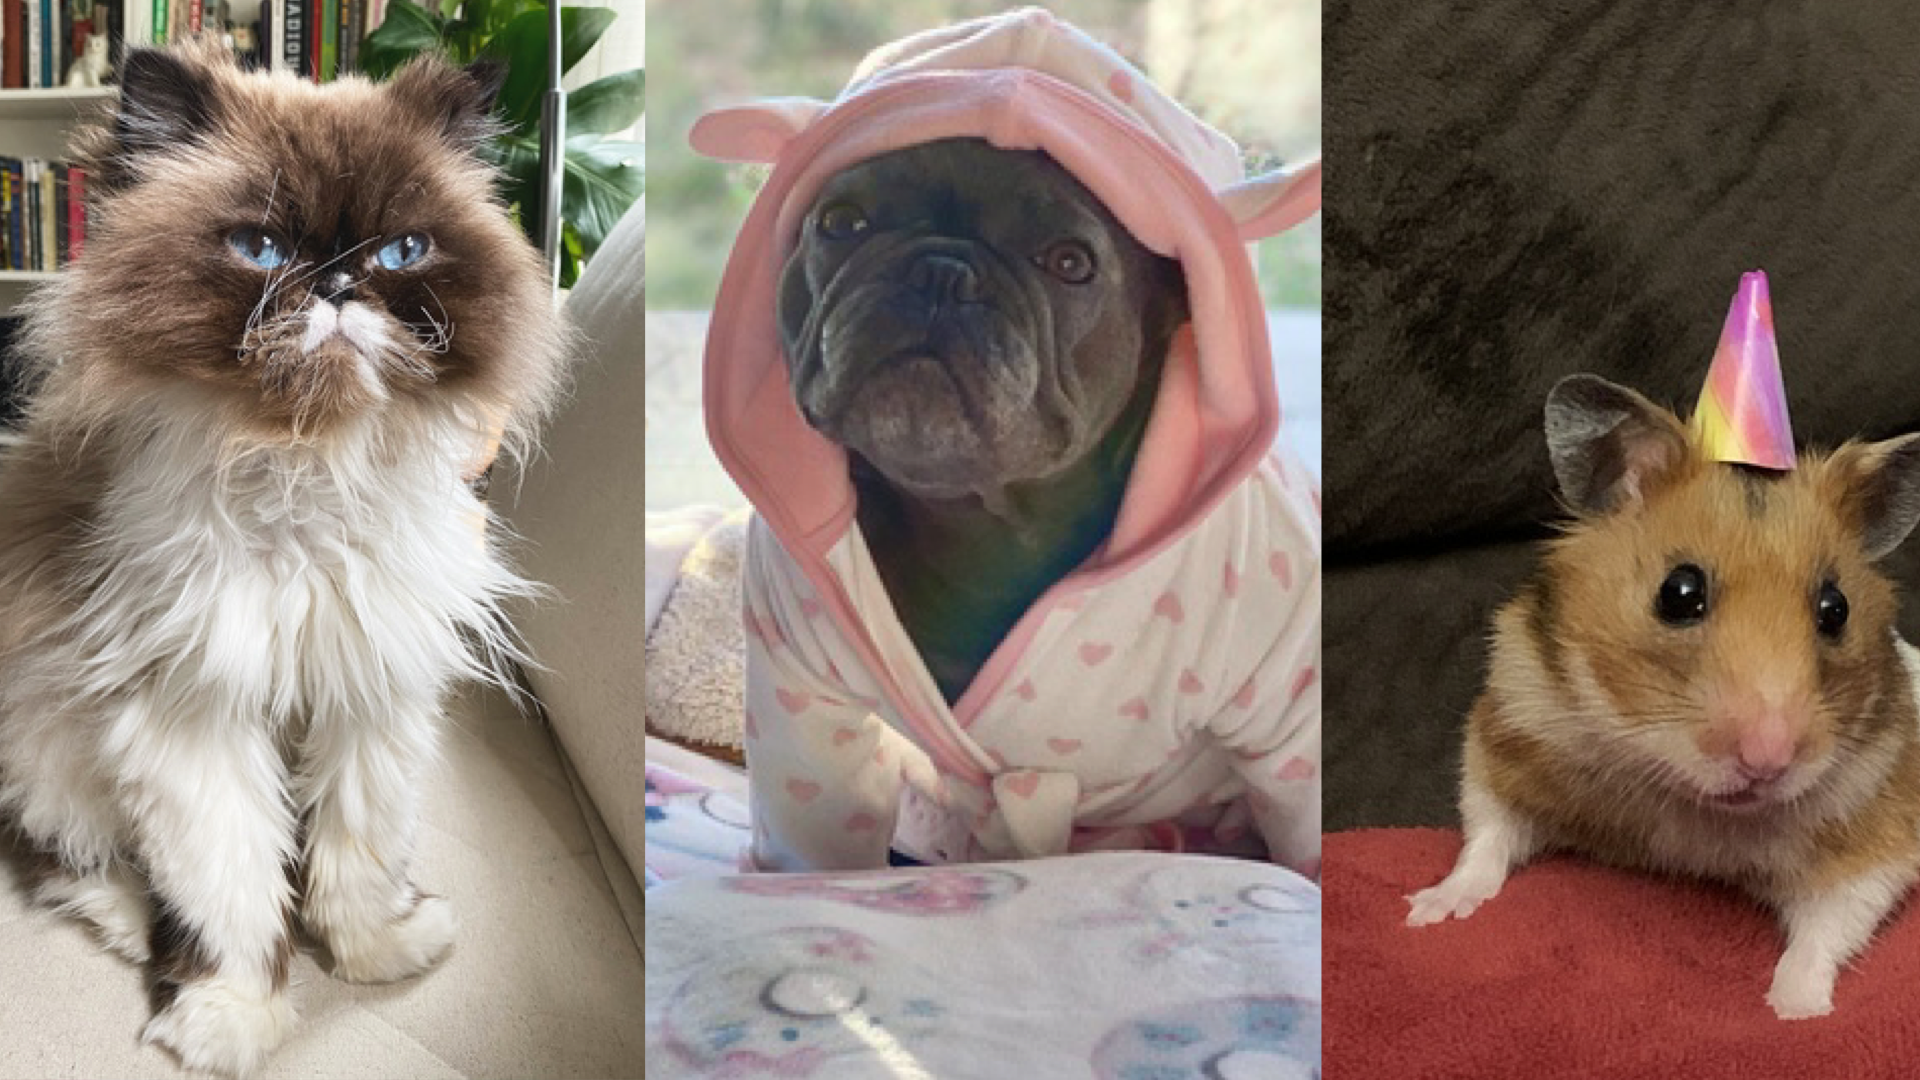 Is your pet the cutest pet in quarantine? Enter them in this contest for a chance to win a prize!